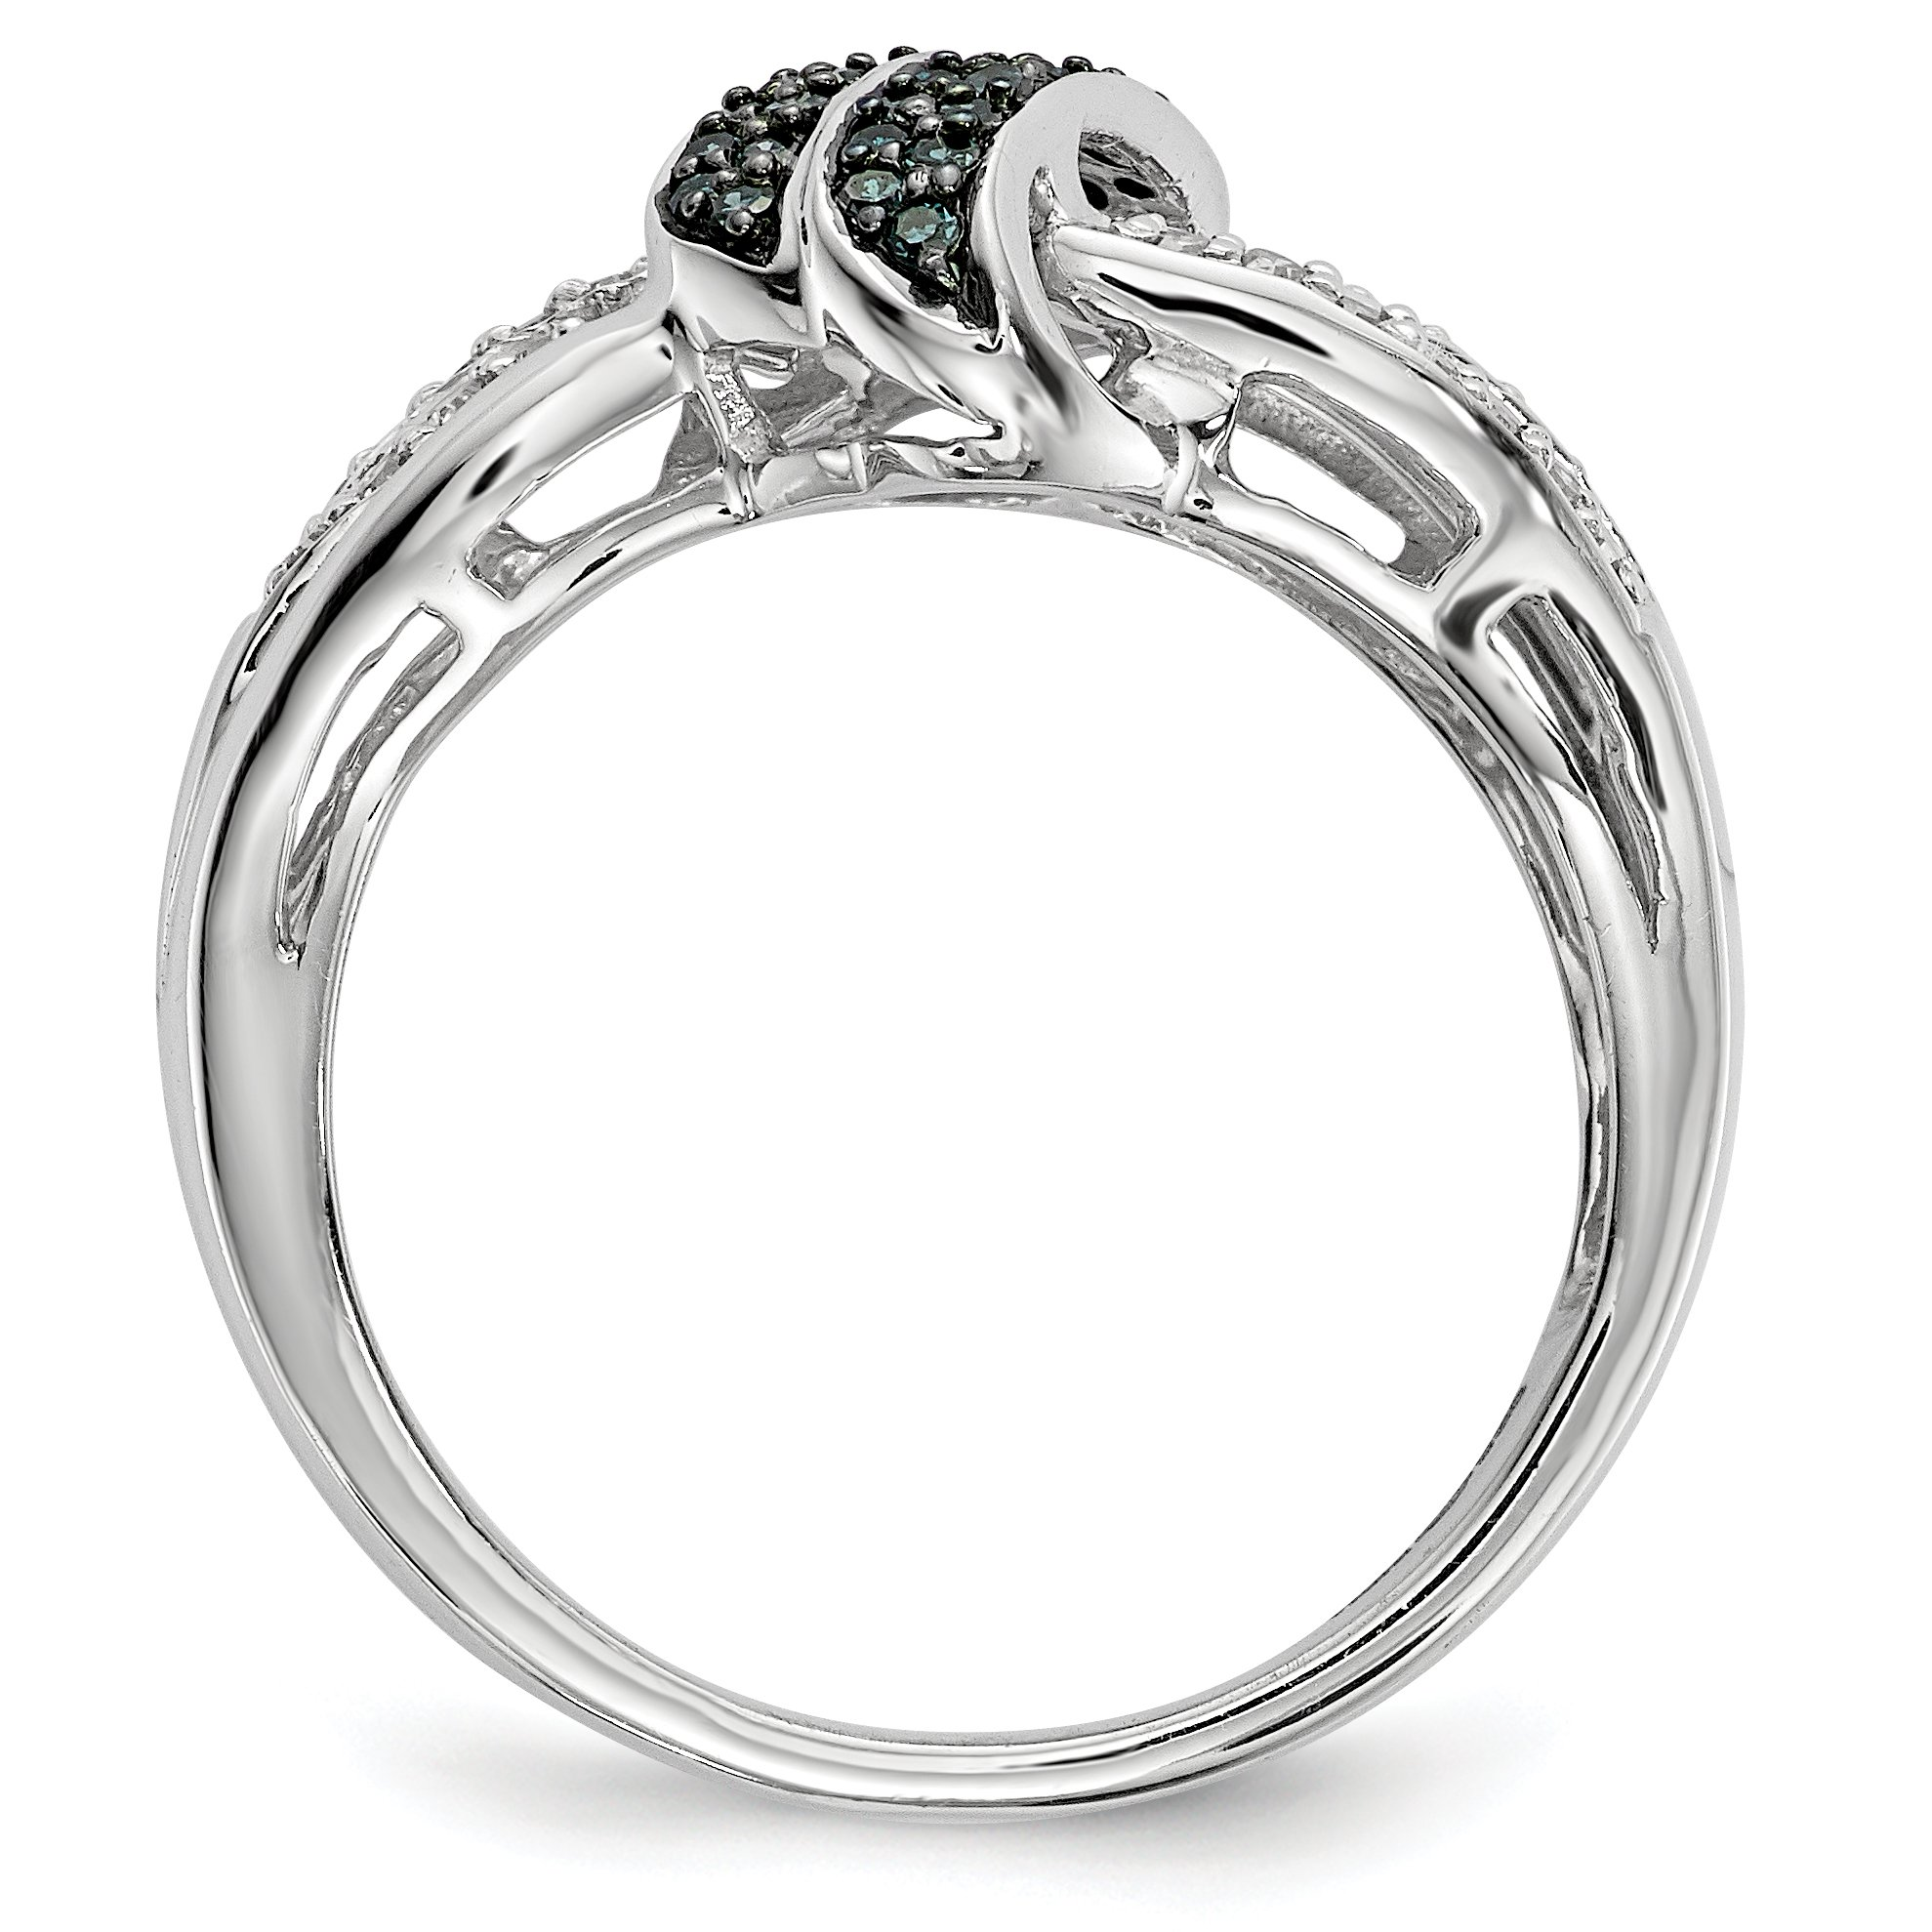 ICE CARATS 925 Sterling Silver White Blue Diamond Band Ring Size 6.00 Fine Jewelry Gift Set For Women Heart by ICE CARATS (Image #2)